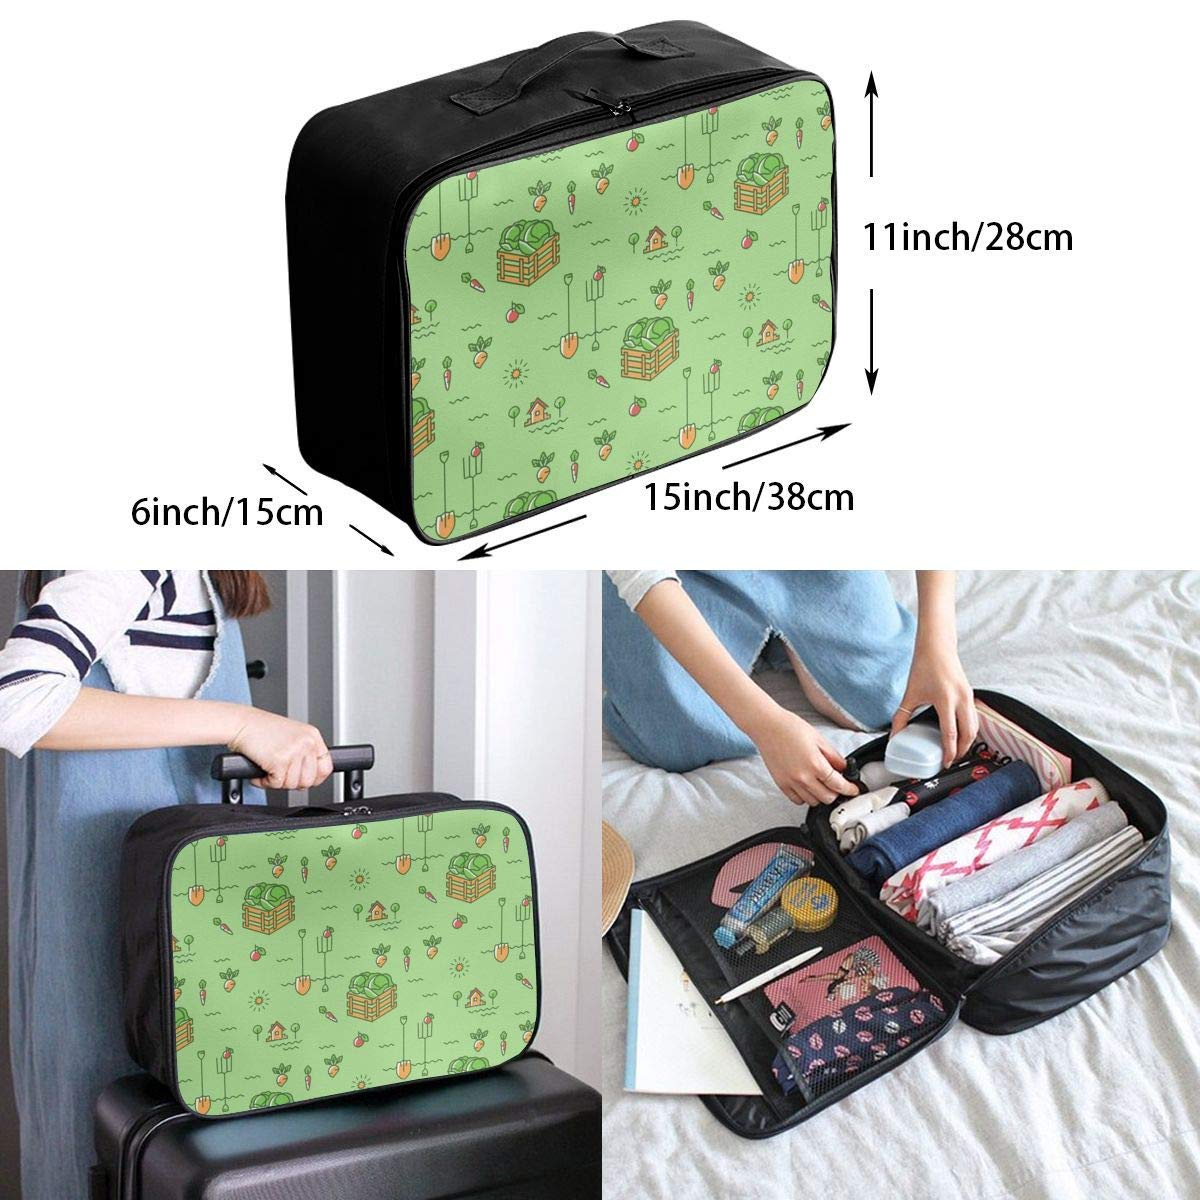 Lightweight Large Capacity Portable Luggage Bag Cabbage Harvest Travel Duffel Bag Backpack